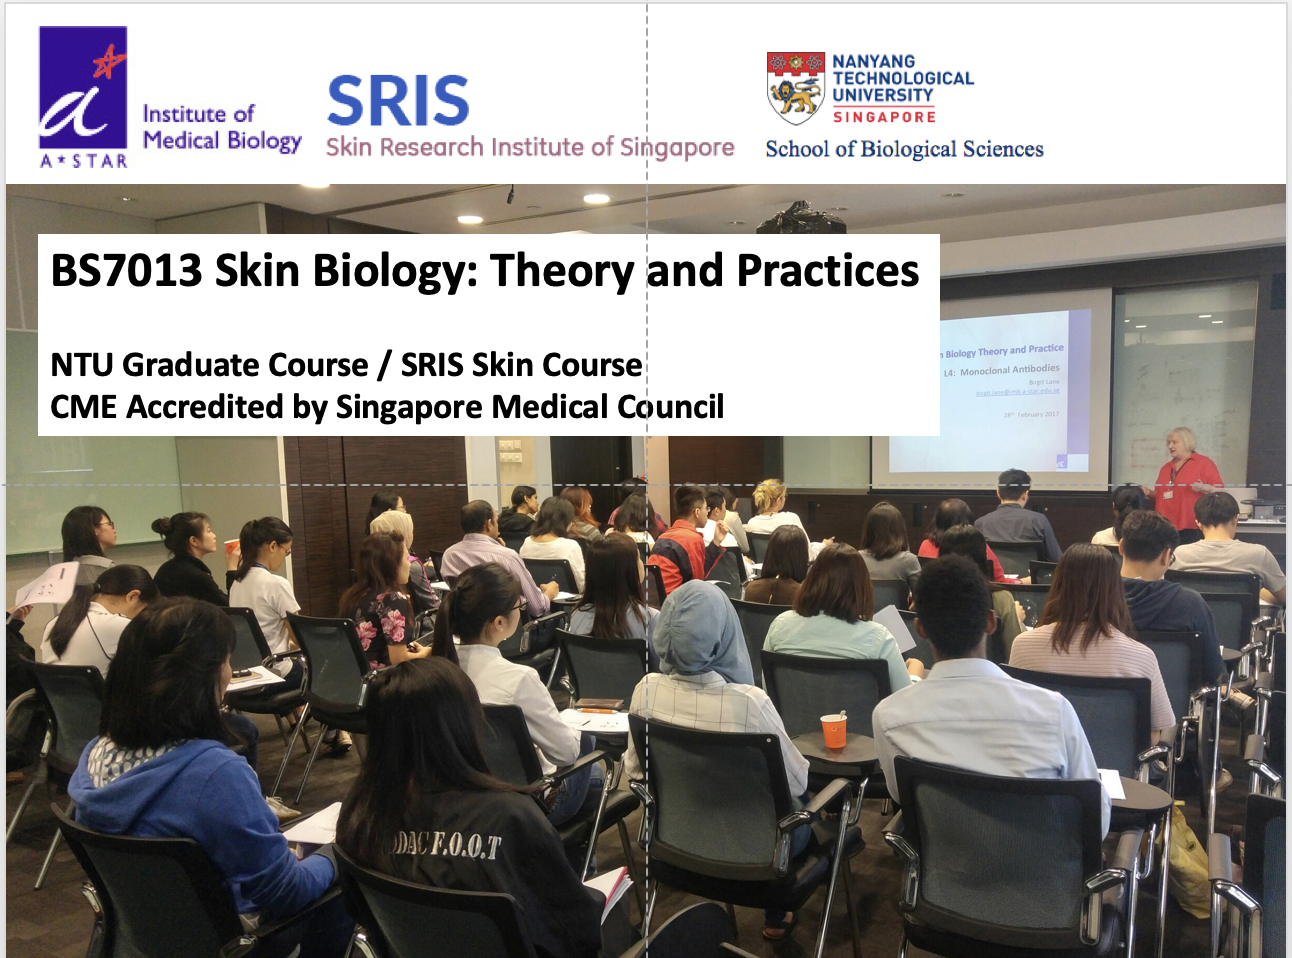 BS7013 Skin Biology: Theory and Practices